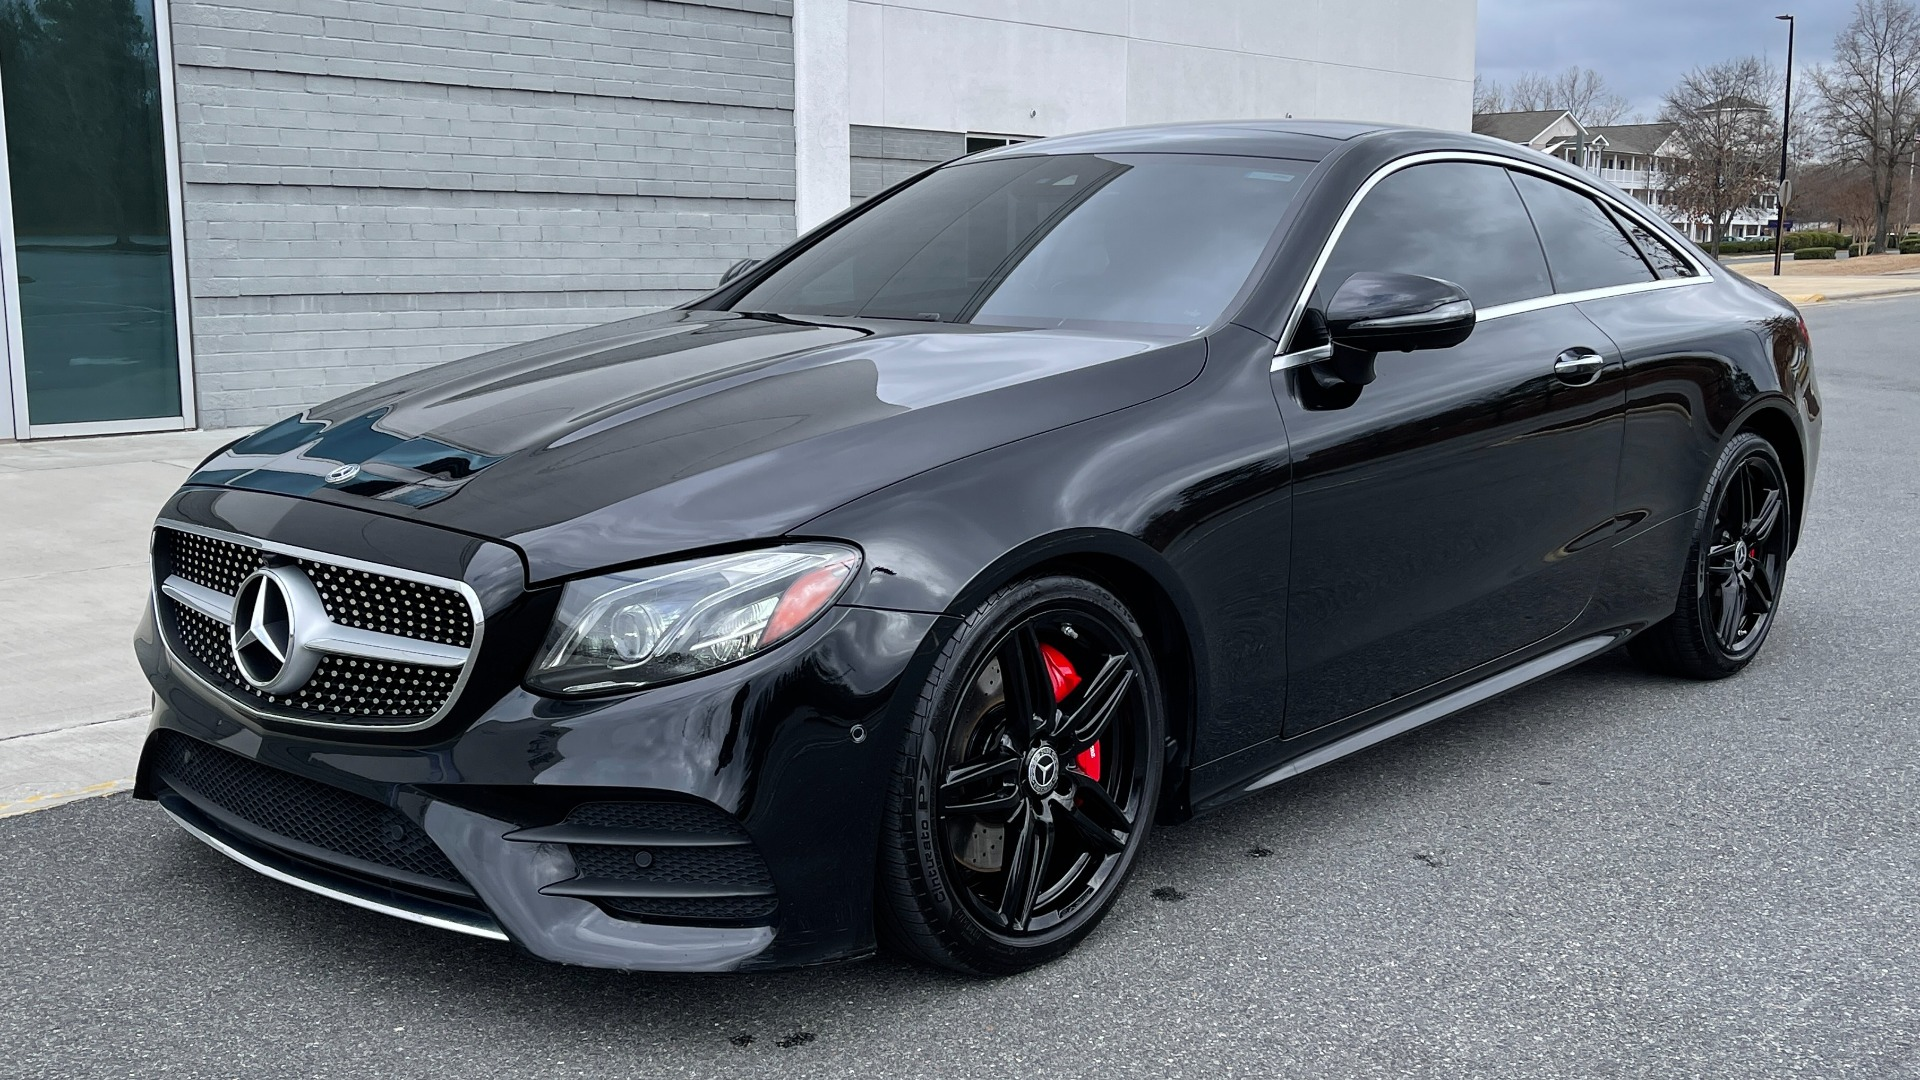 Used 2019 Mercedes-Benz E-CLASS E 450 PREMIUM / AMG LINE / PARK ASST / BSA / BURMESTER for sale $49,995 at Formula Imports in Charlotte NC 28227 2